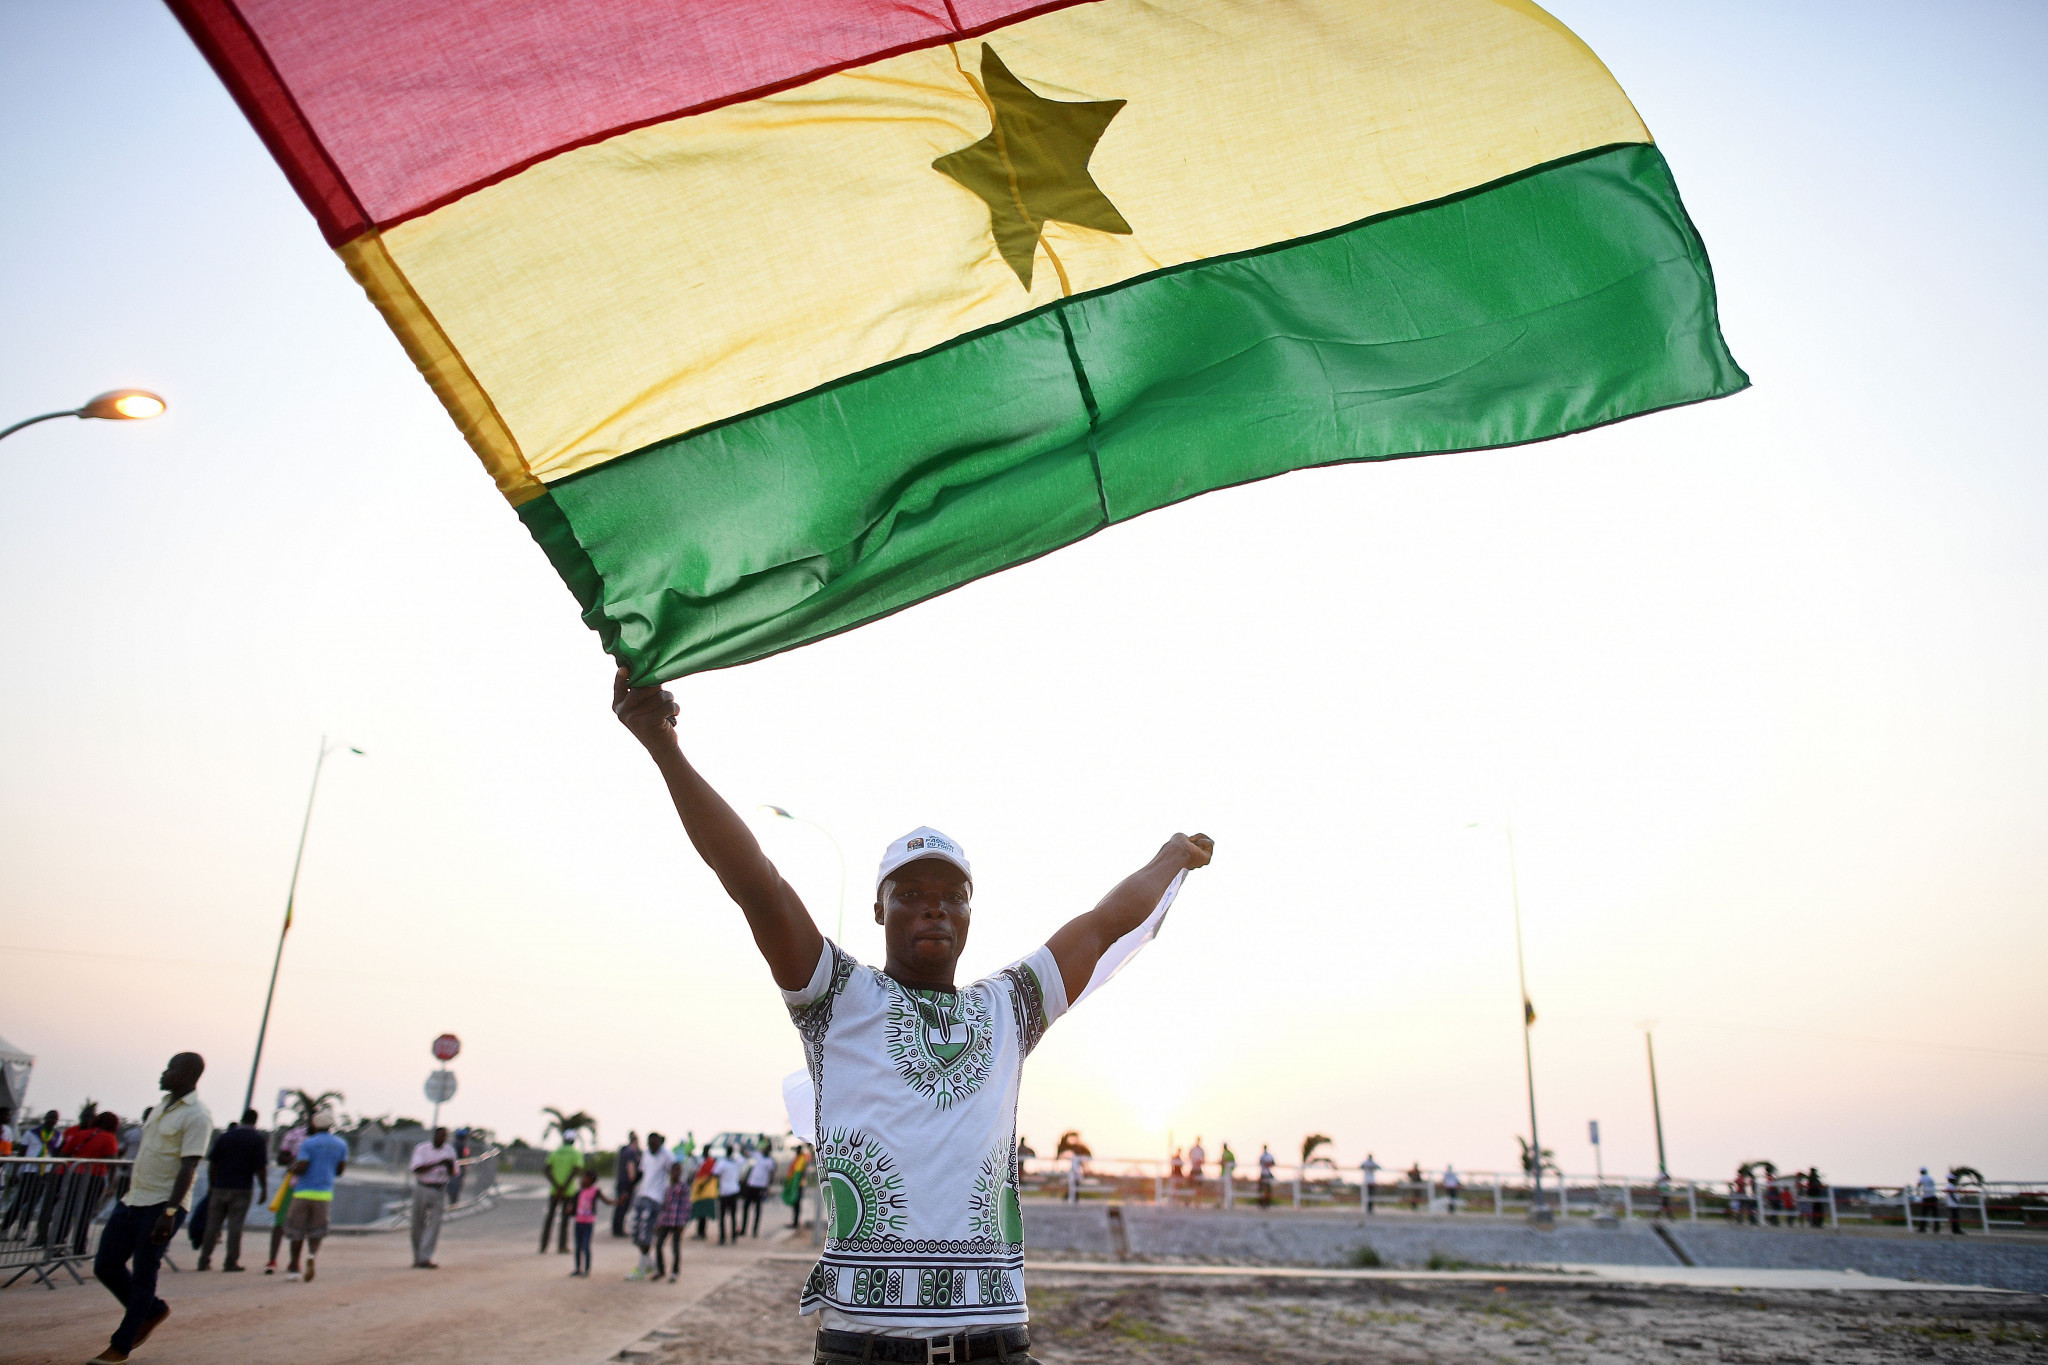 Ghana eyes ambitious bids for Olympics and FIFA World Cup